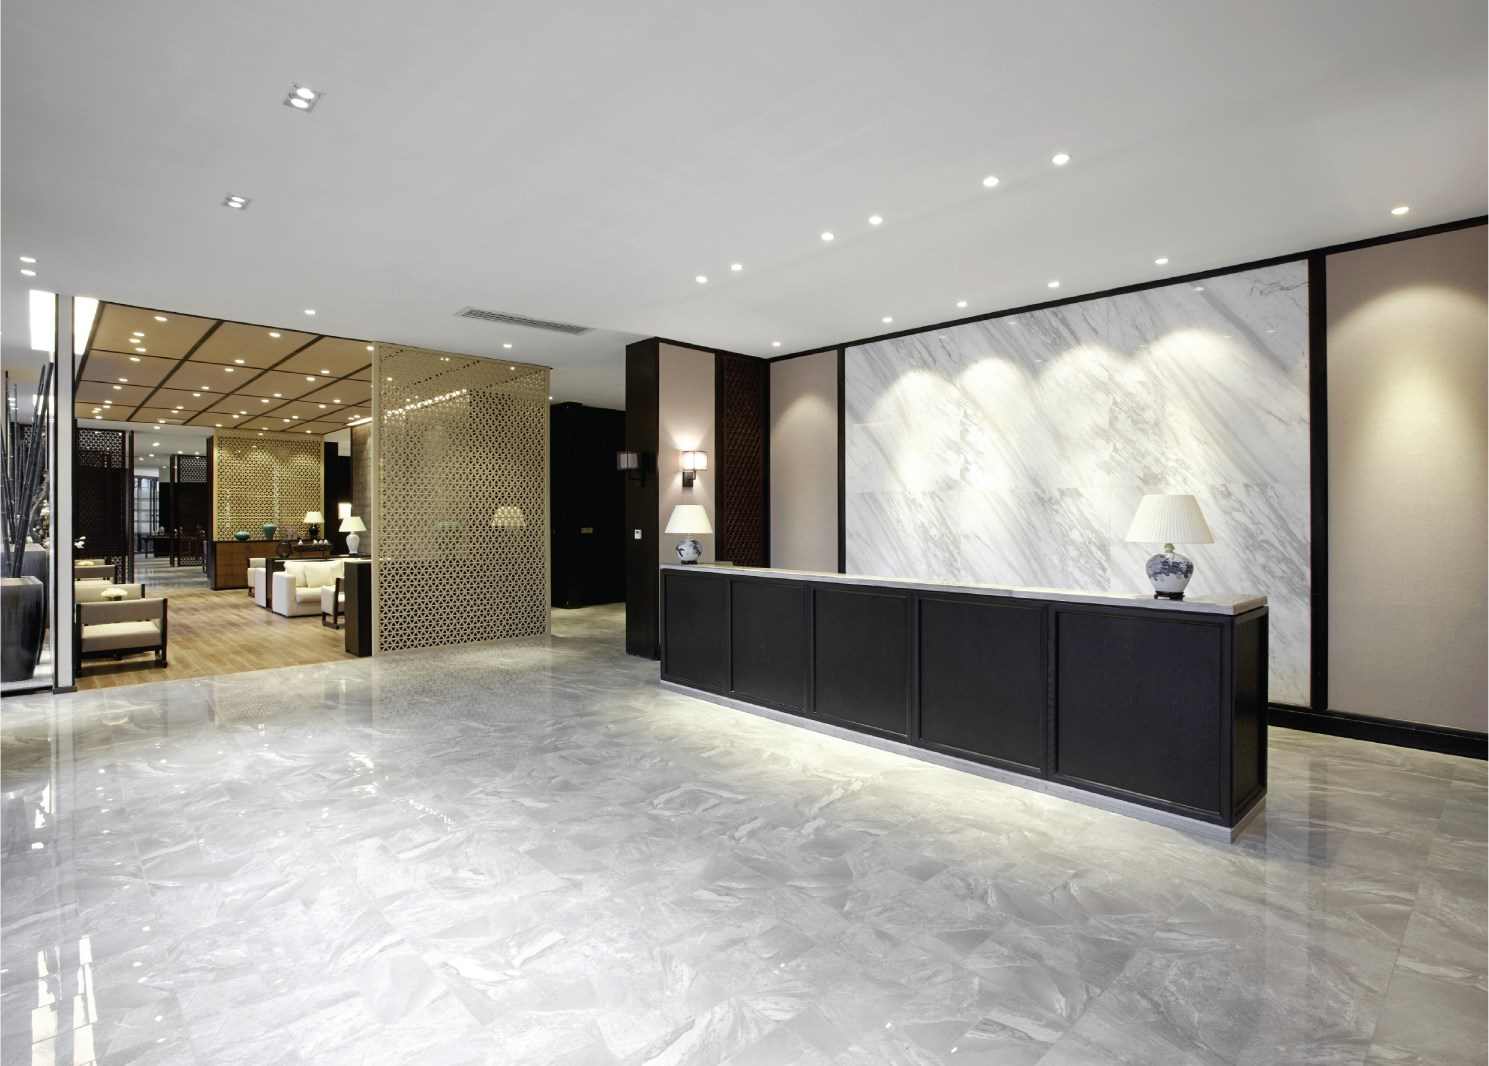 The lobby of a resident\u0027s building is the first thing a shareholder unit owner guest or prospective buyer notices when they come through the front door. & Redecorating Your Common Areas - A New Look for Your Lobby - The New ...